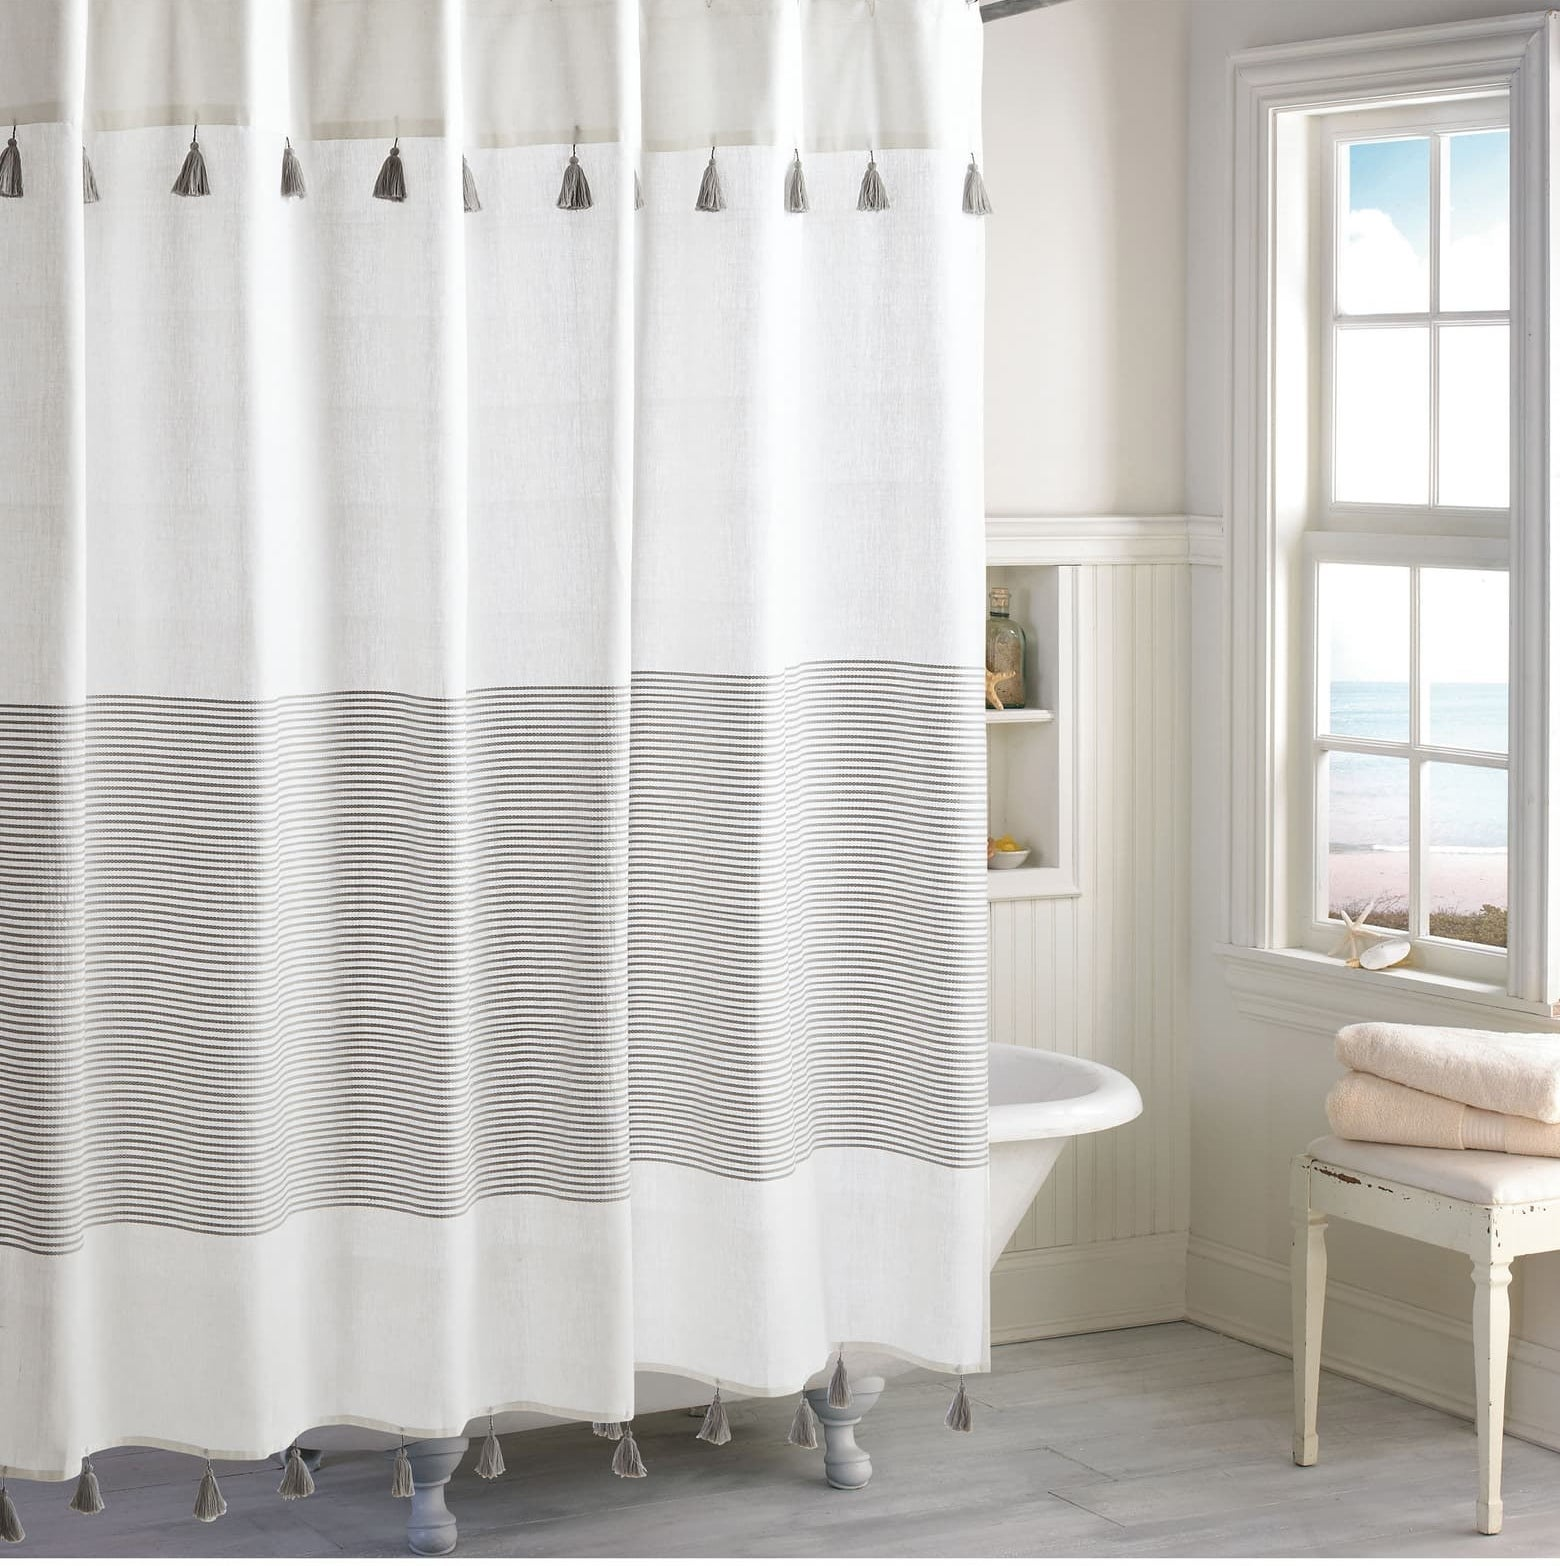 White shower curtain with small stripes in the middle and grey tassels on the top and the bottom